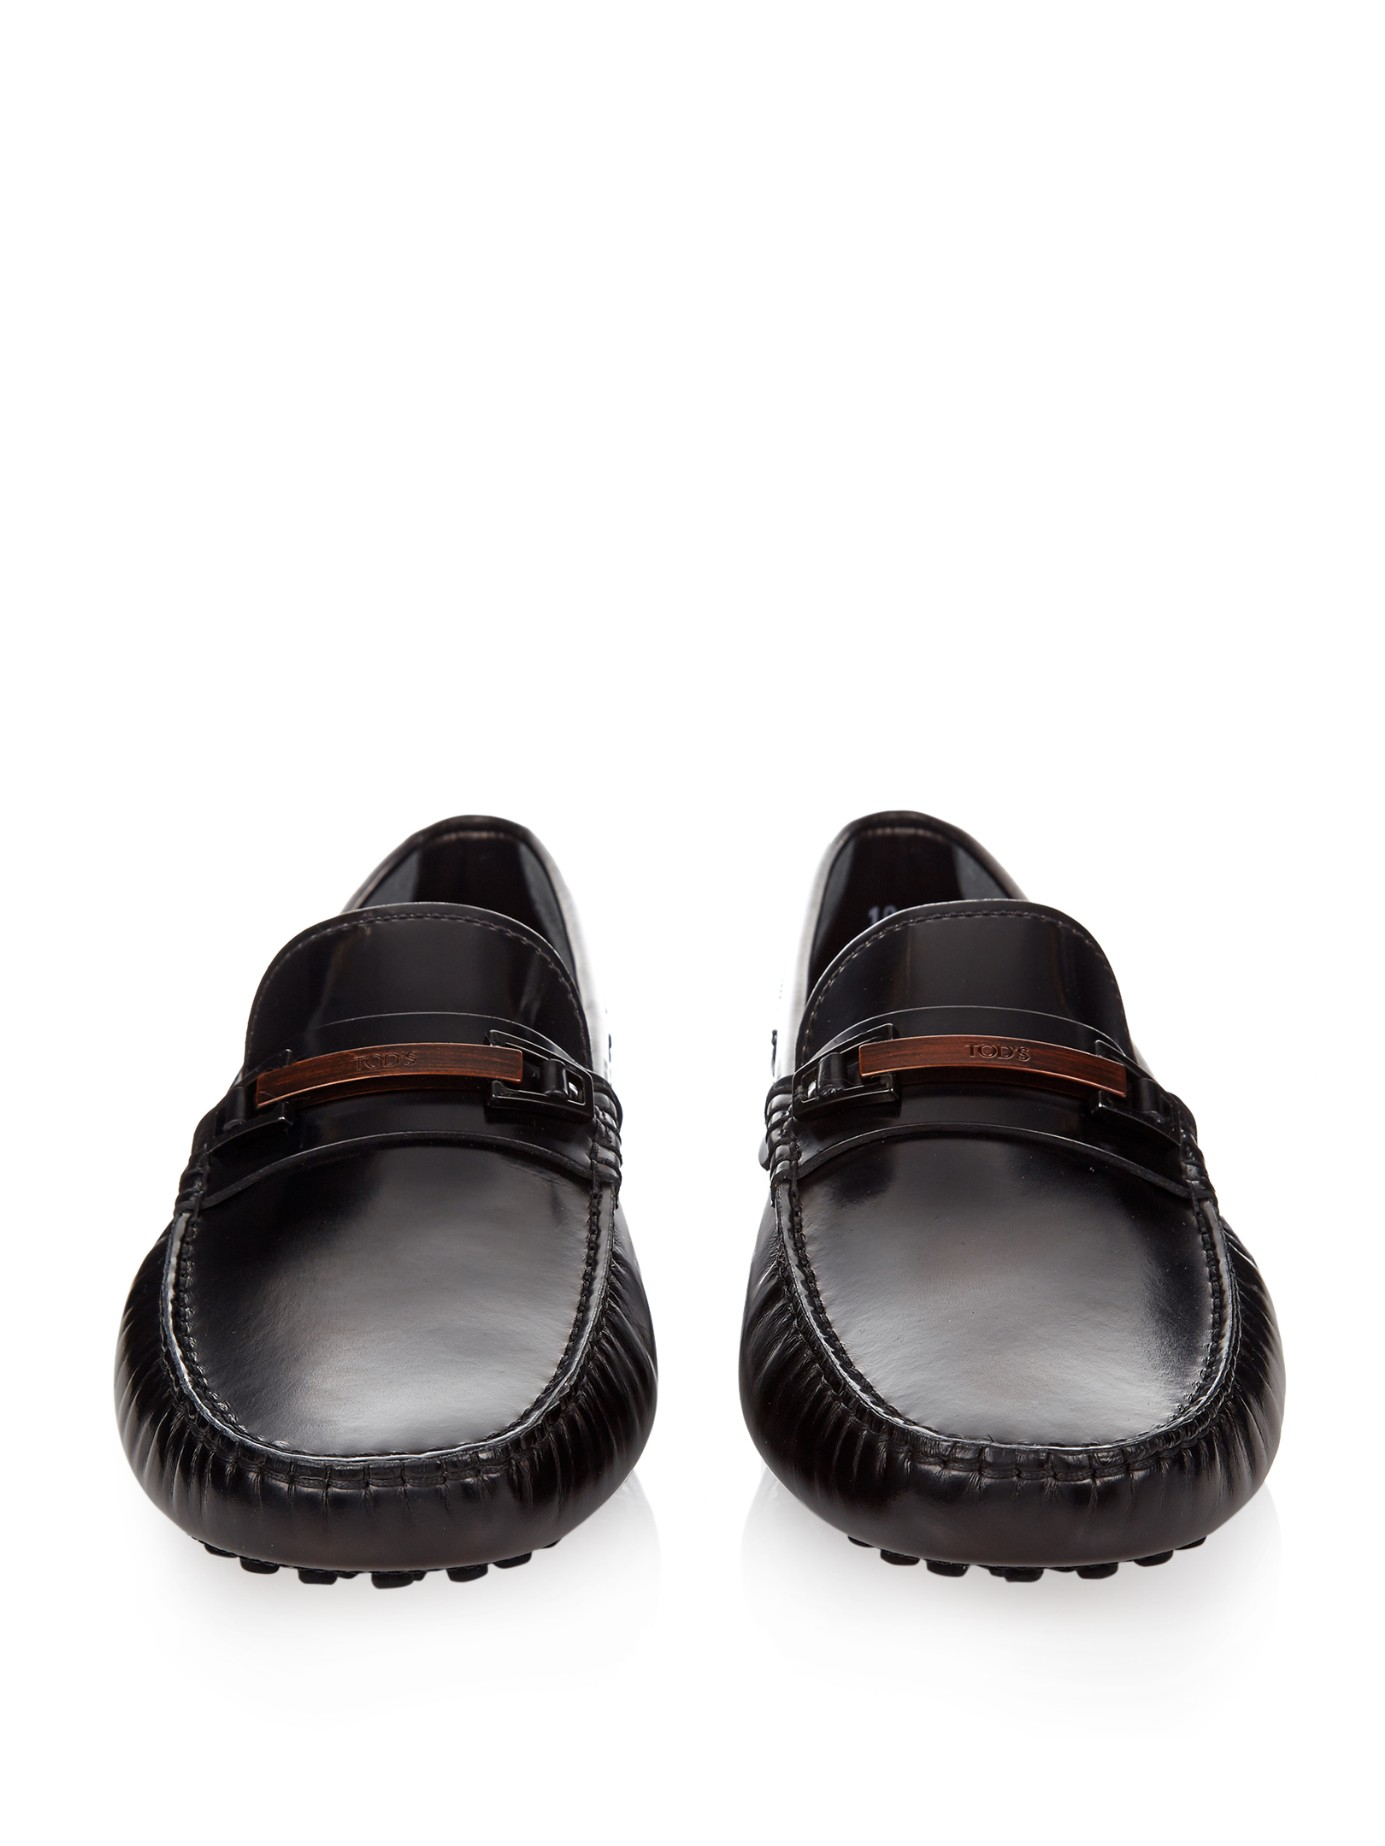 Lyst - Tod's Gommino Leather Driving Shoes in Black for Men